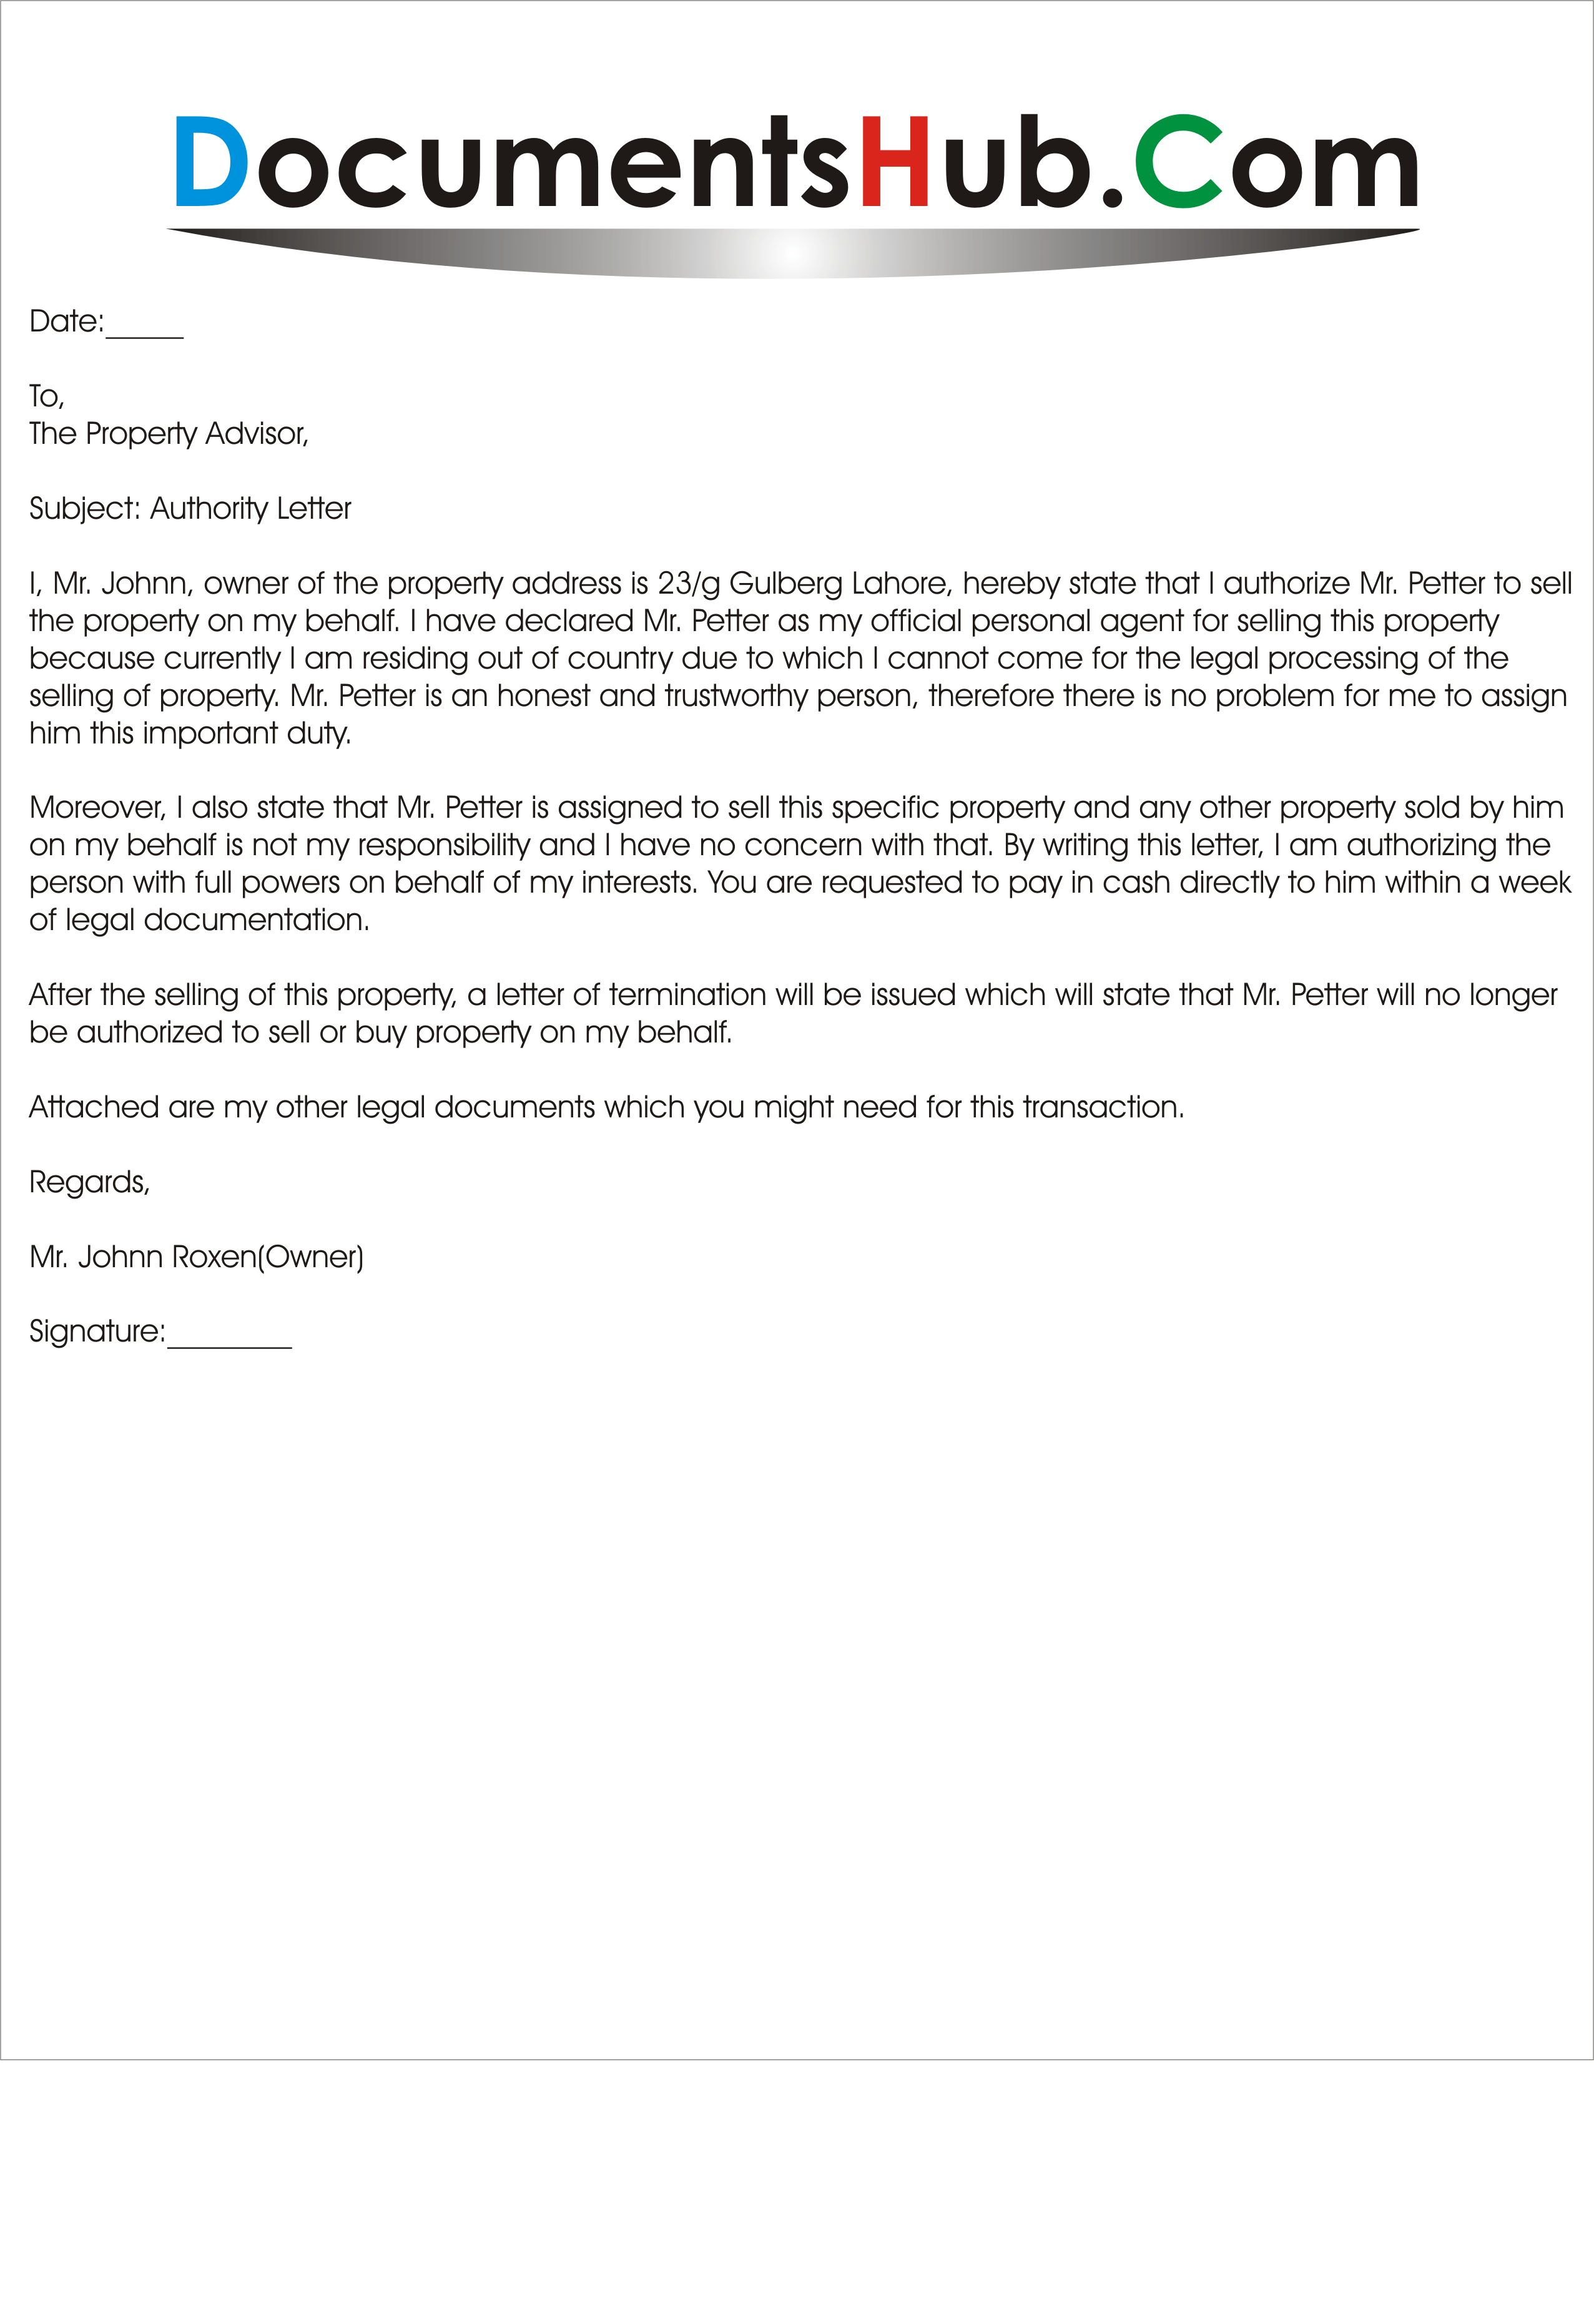 please refer to the attached application letter for your